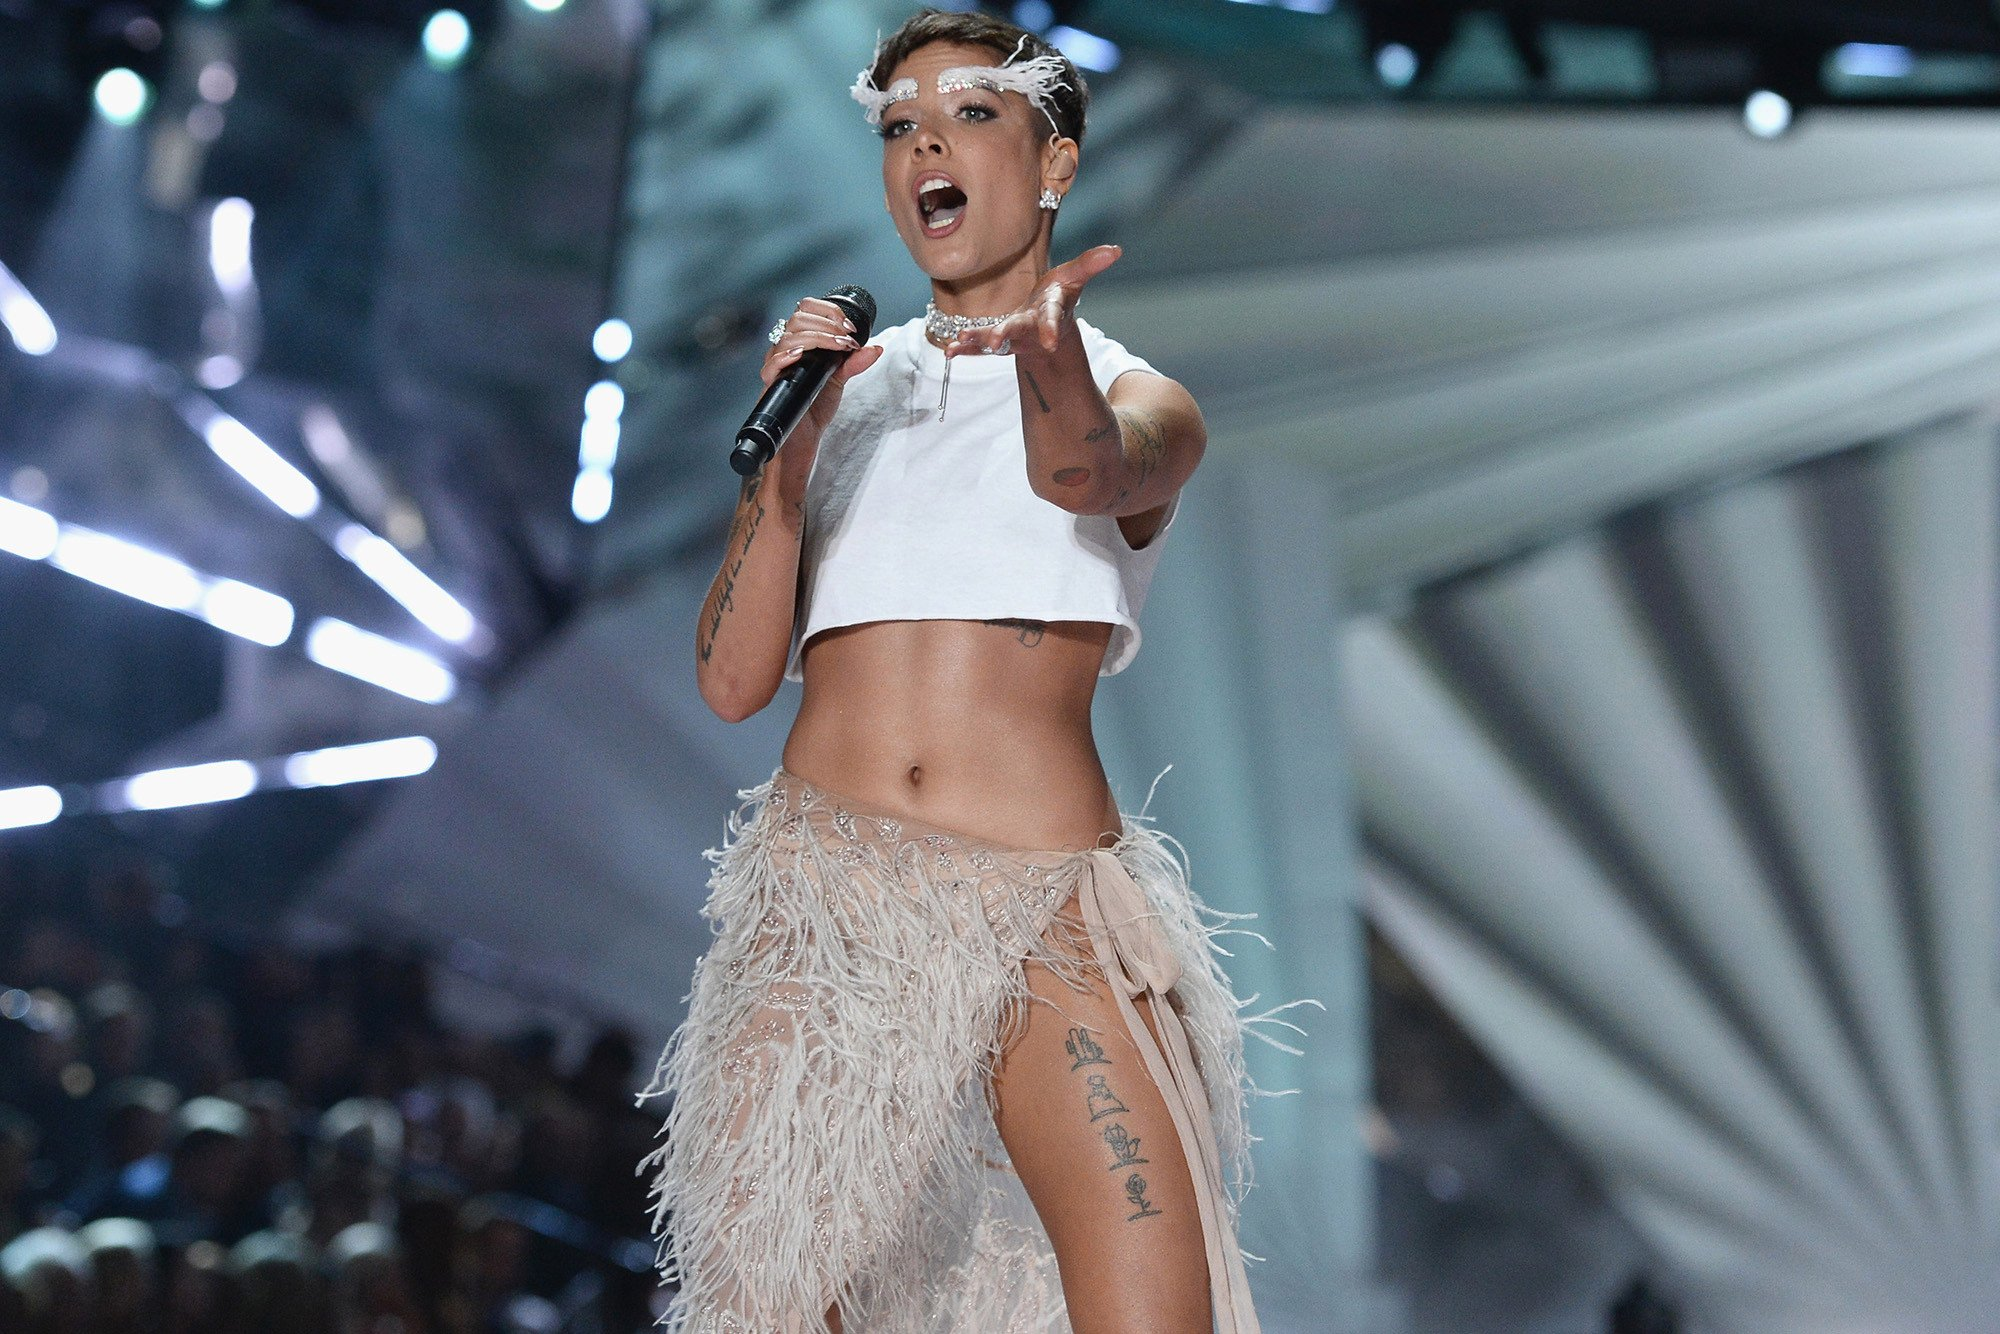 Halsey criticizes Victoria's Secret Fashion Show over 'lack of inclusivity'